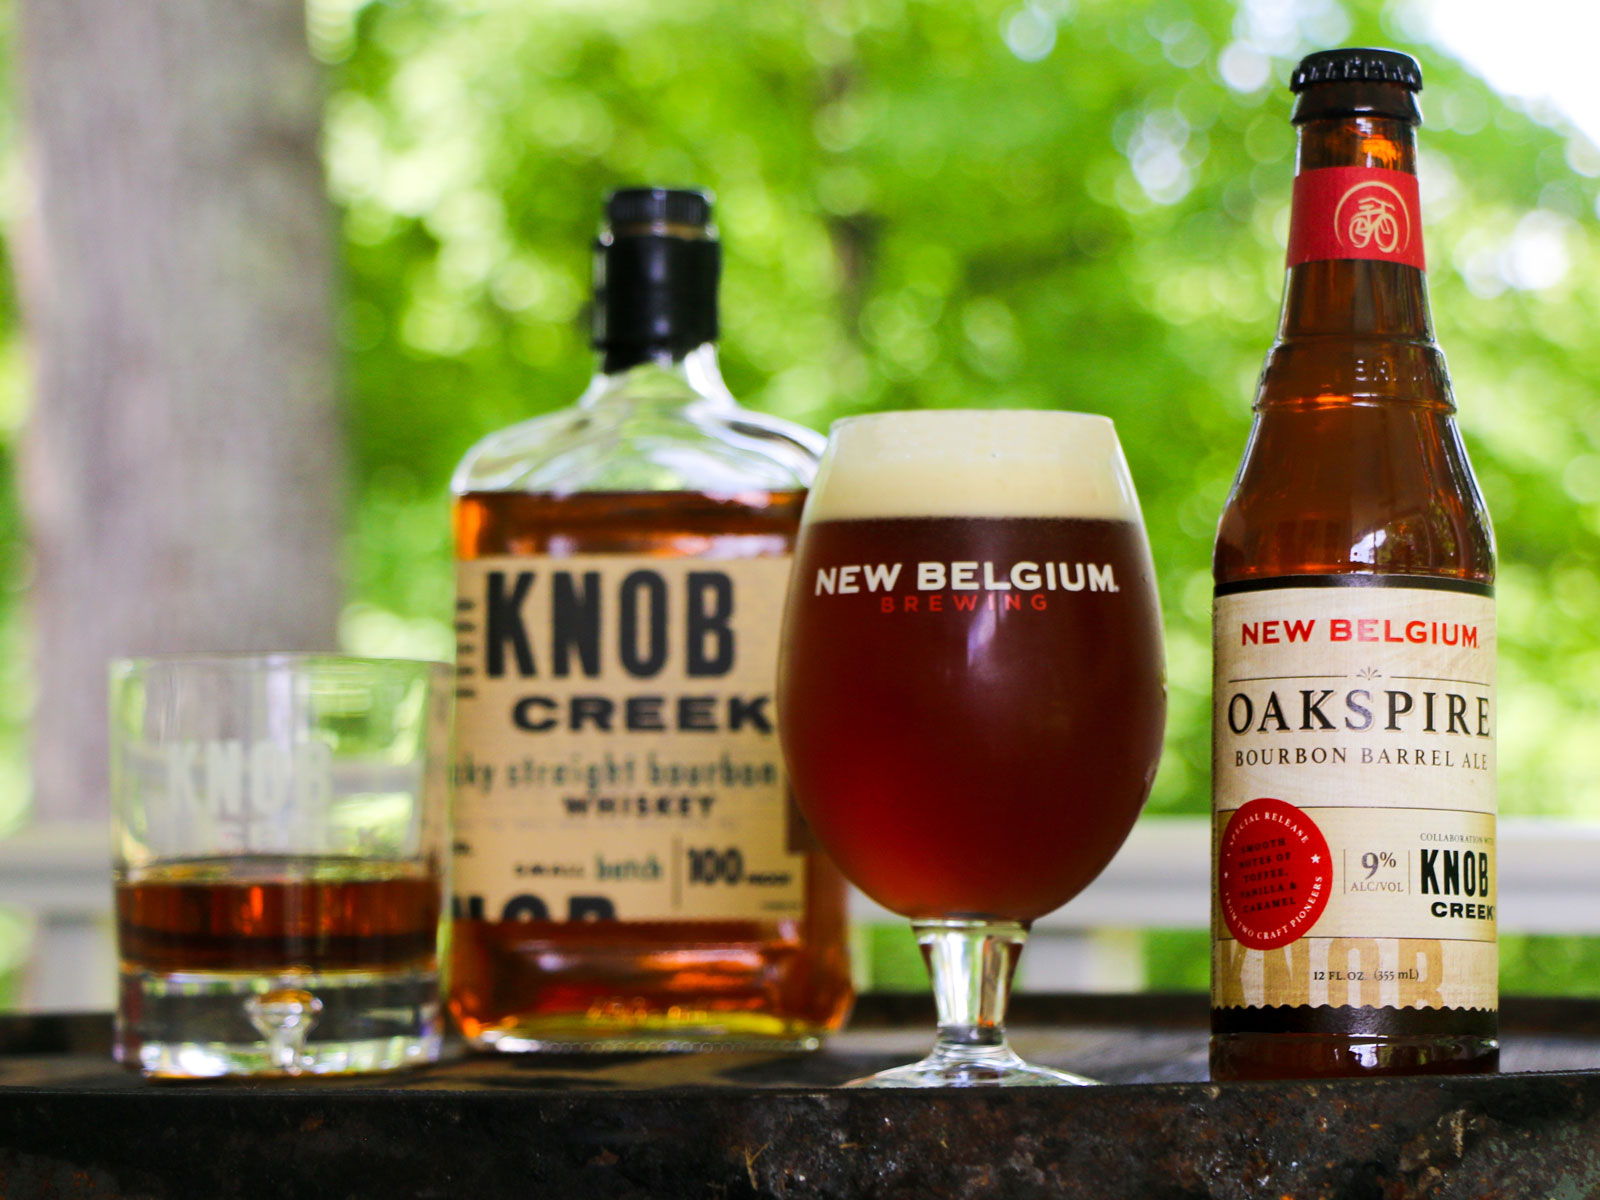 New Belgium - Oakspire Bourbon Barrel Ale